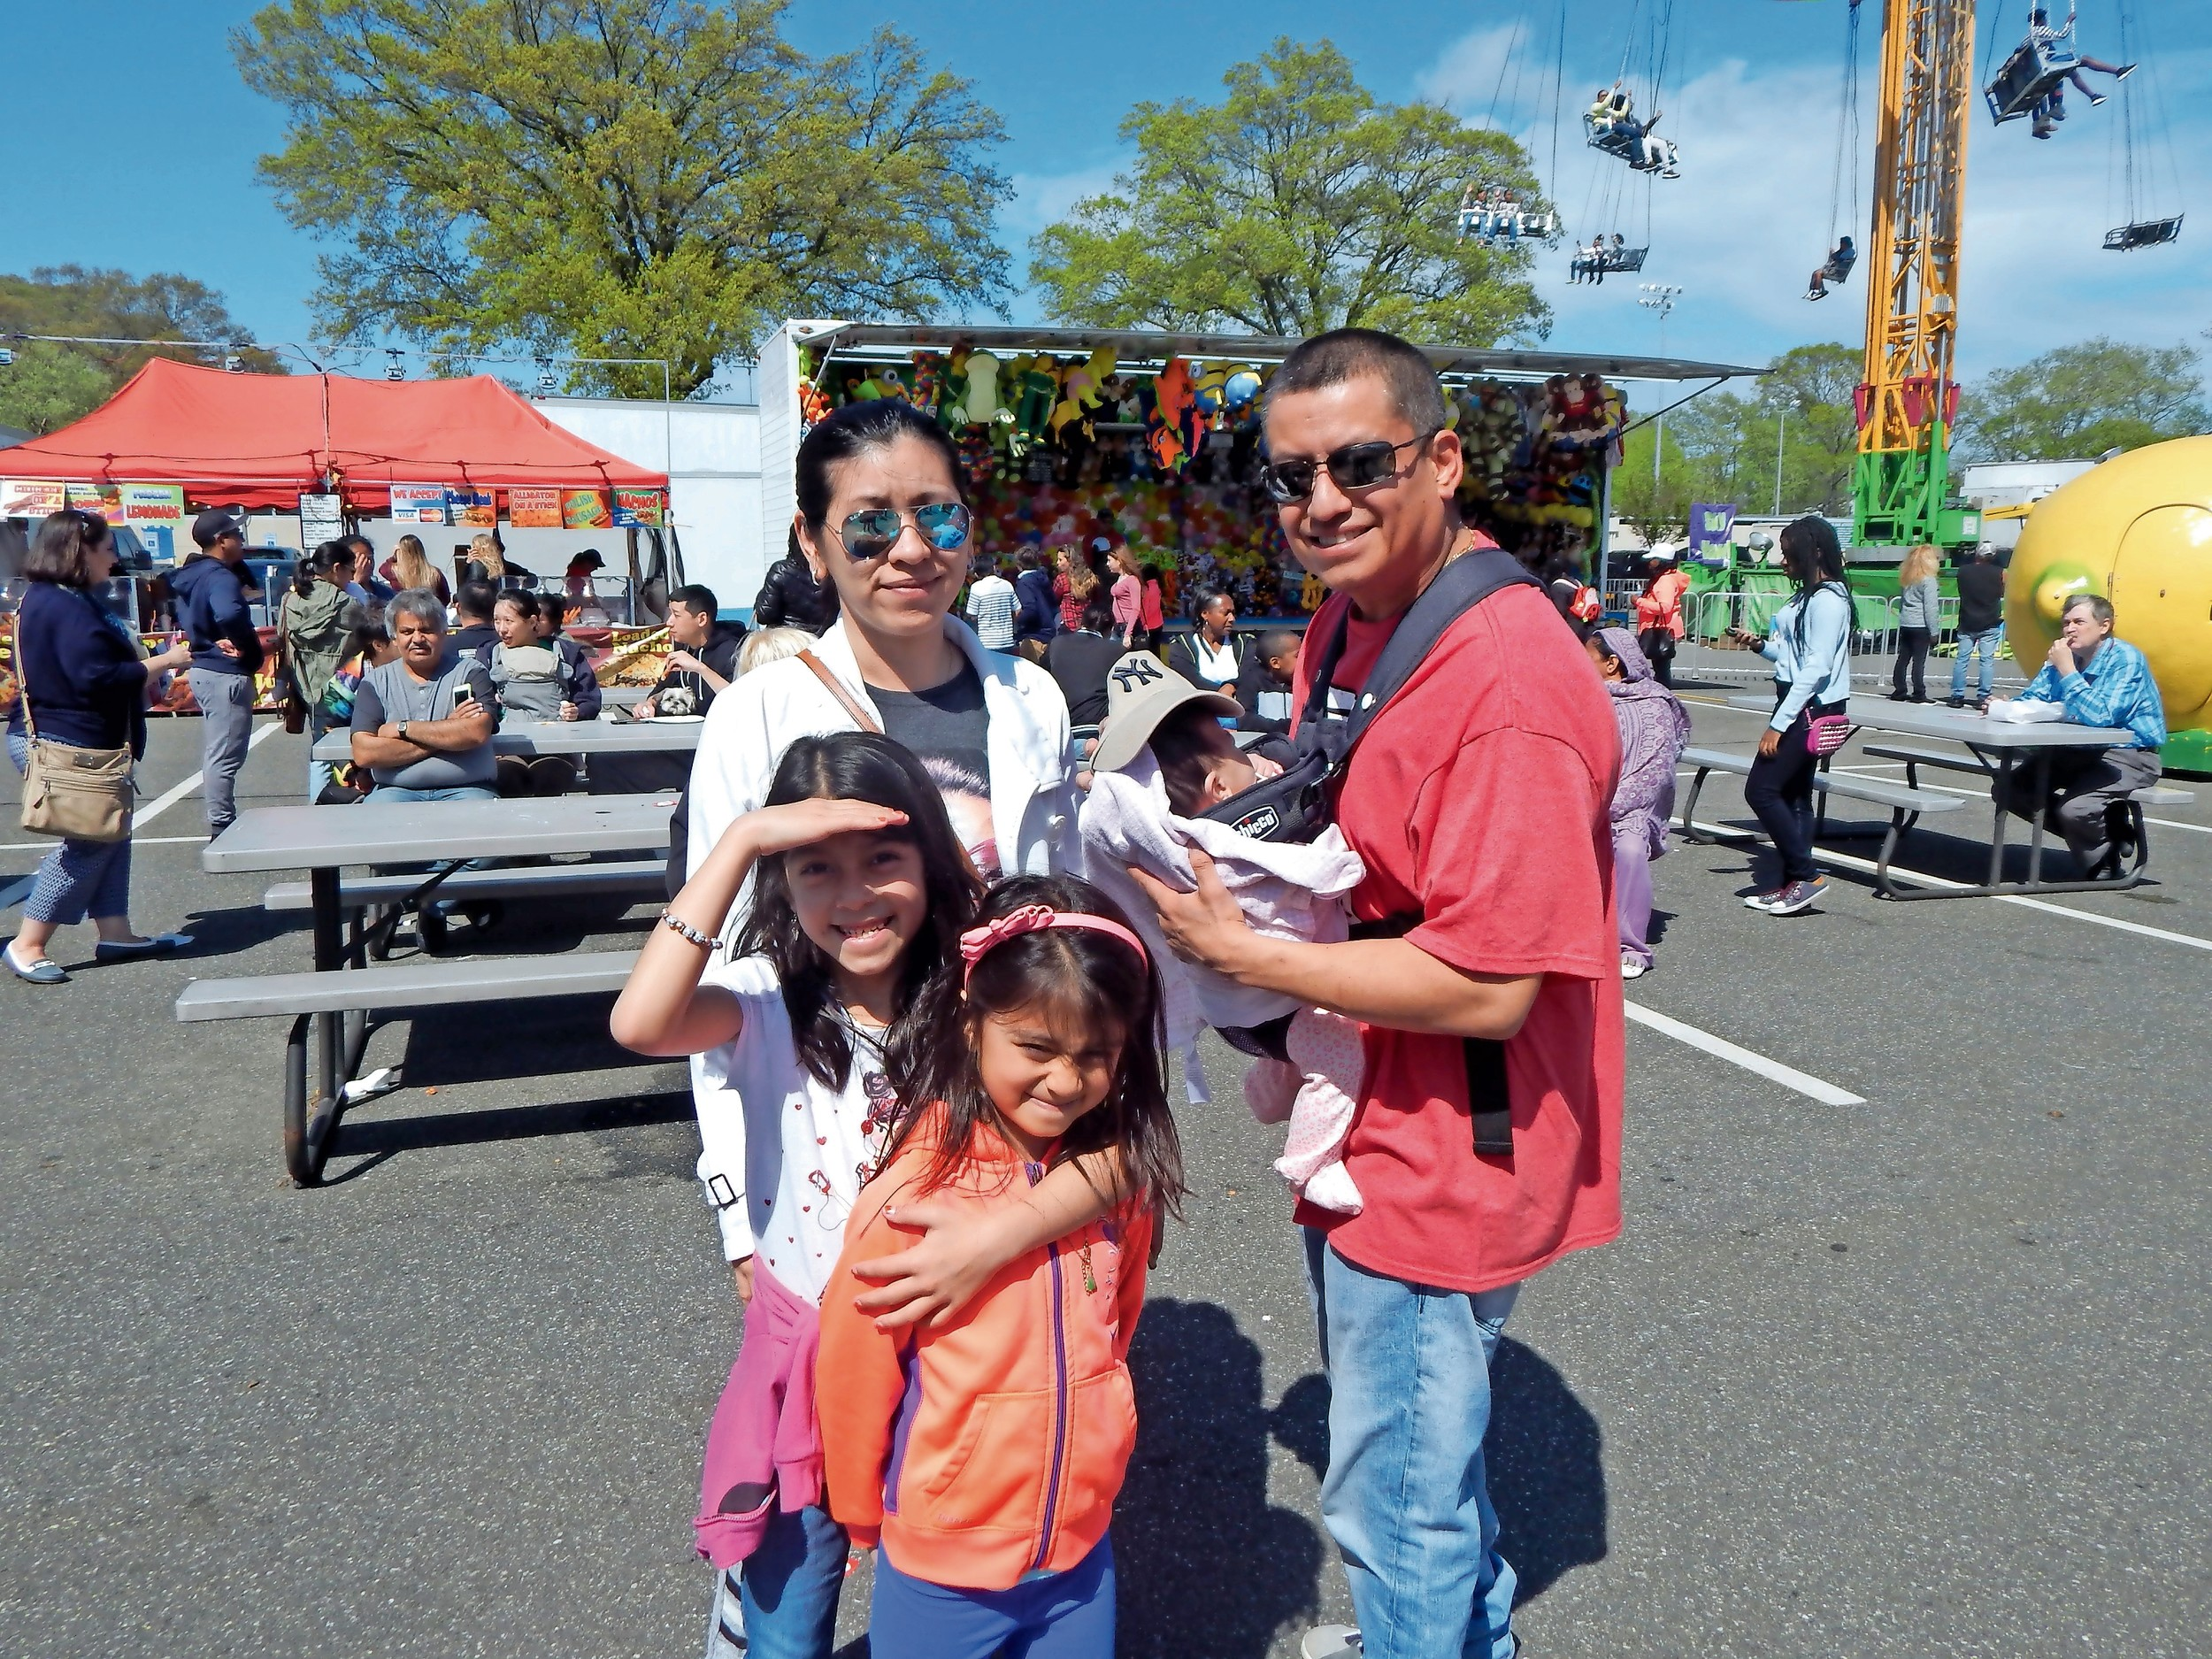 Emily and Alfredo Estrella brought their daughters Tiffany, Isabella, and Kaitlin to the carnival.